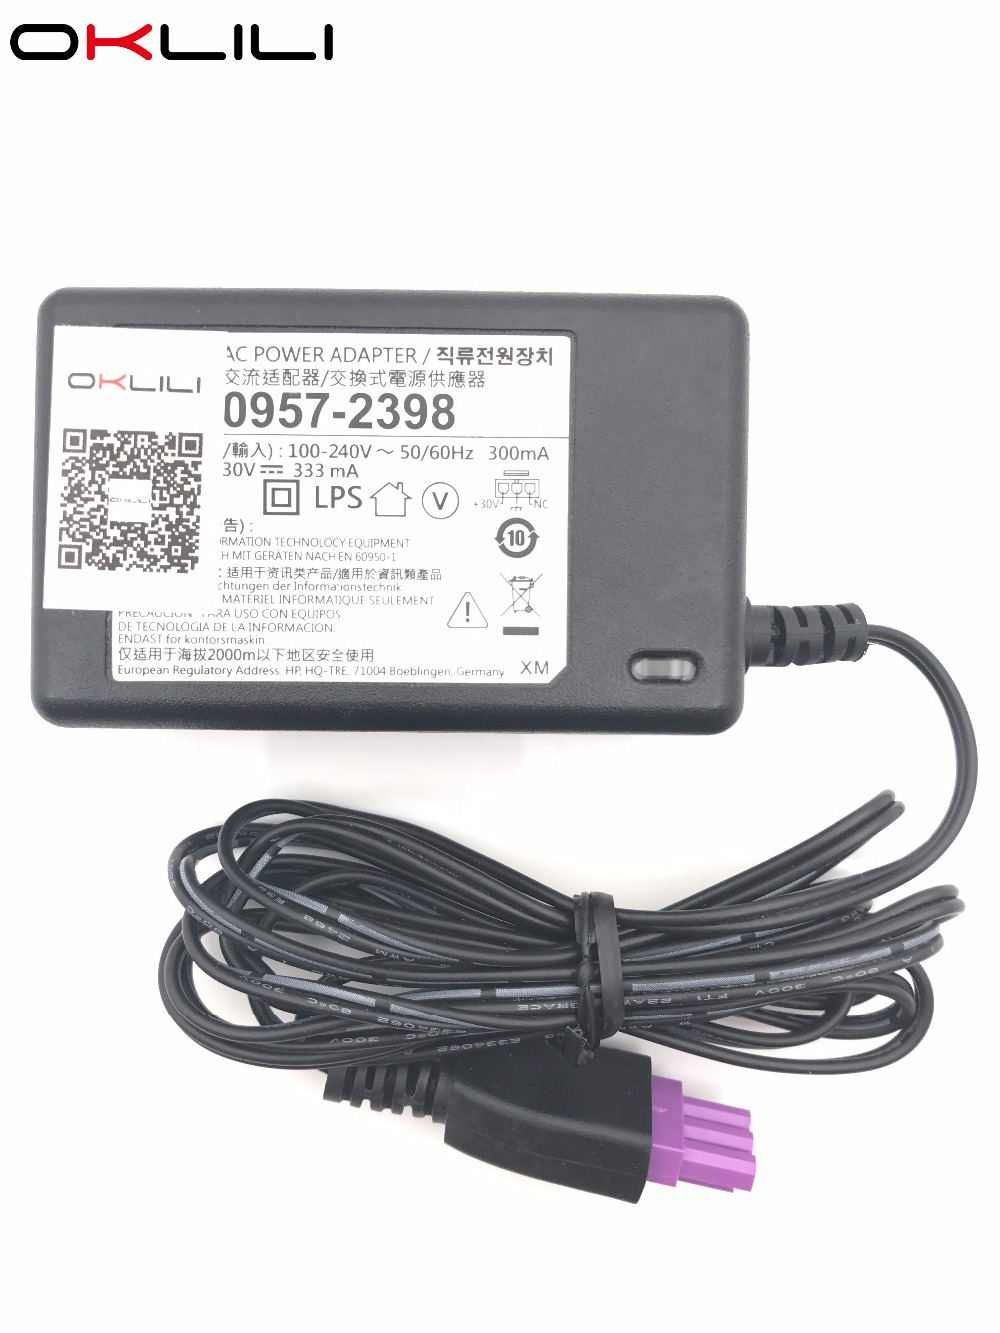 0957-2290 0957-2286 0957-2398 AC Power Adapter Charger 100-240 V 50/60 Hz 300 mA 30 V 333 mA para HP Deskjet 1050 1000 2050 2000 2060